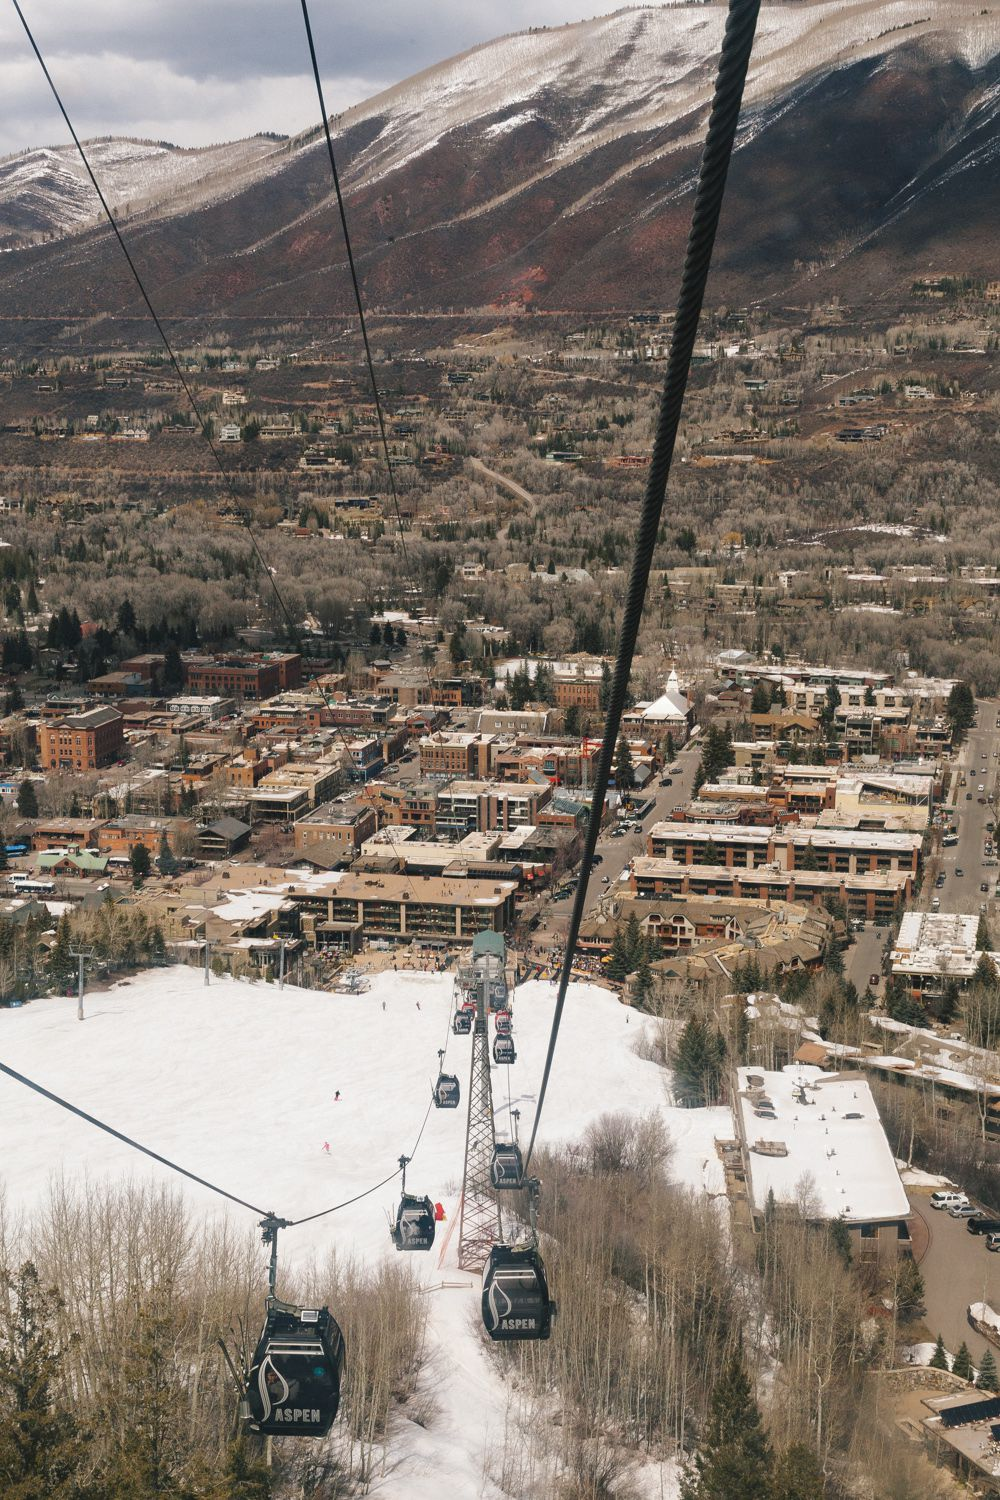 The town of Aspen seen from the gondola lift.